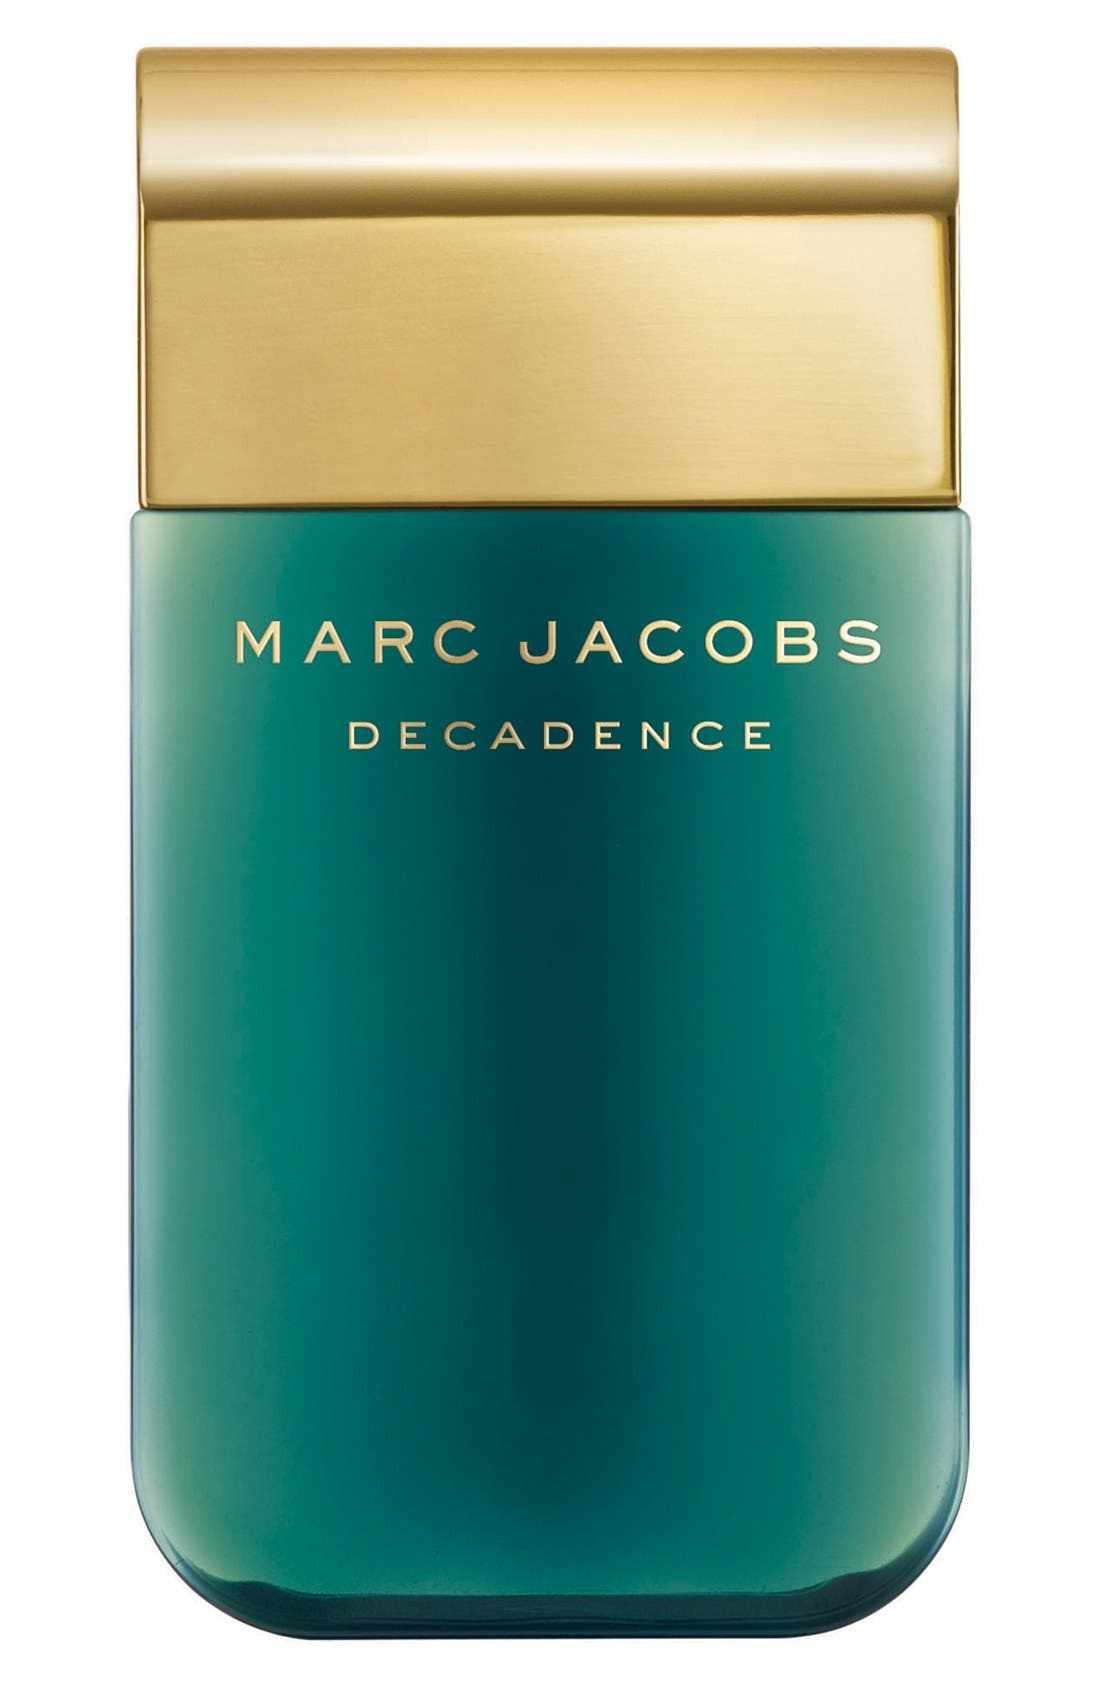 MARC JACOBS 'Decadence' Body Lotion